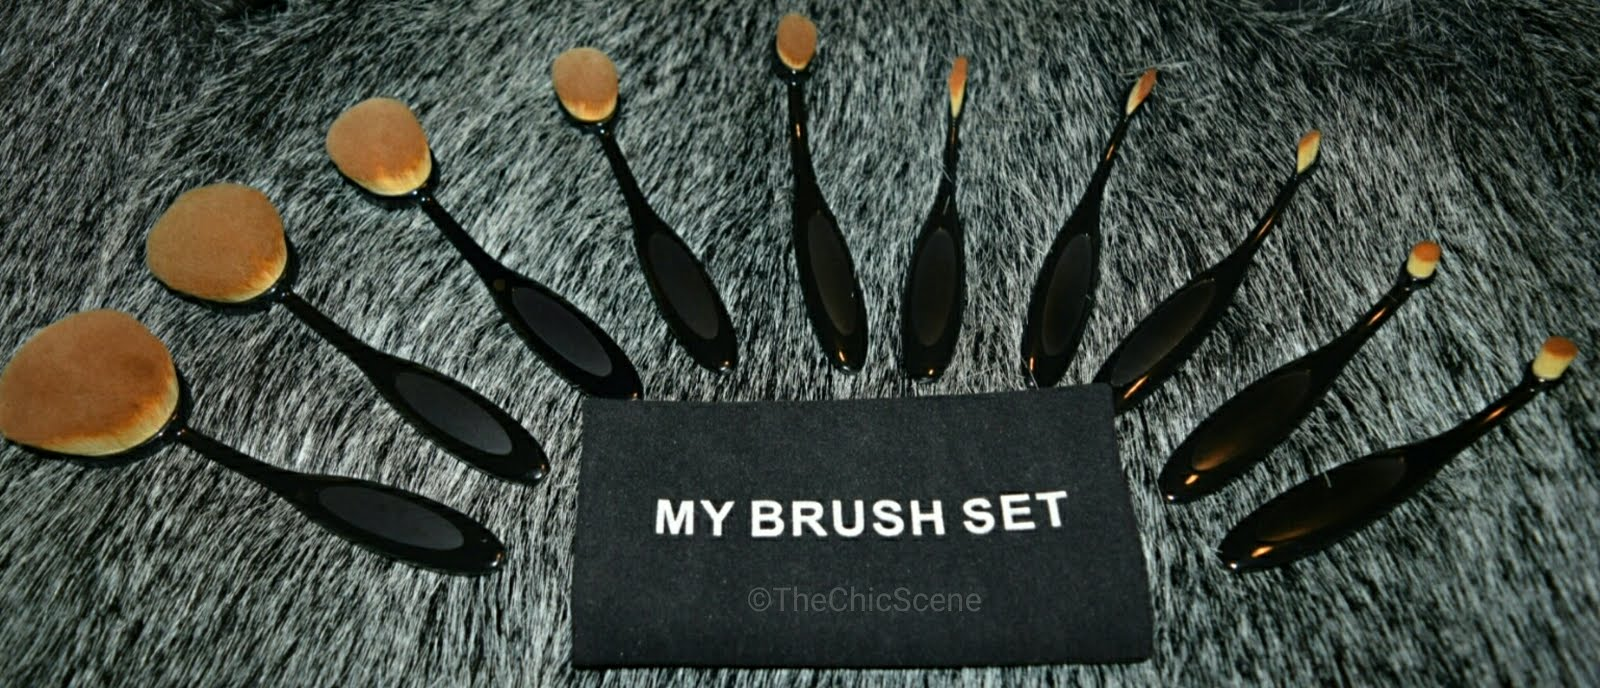 "Black 10 piece Oval Brush Set MyMakeupBrushSet.com. Use my code ""YOURDESTINYDC10"" for 10% off your purchase!"